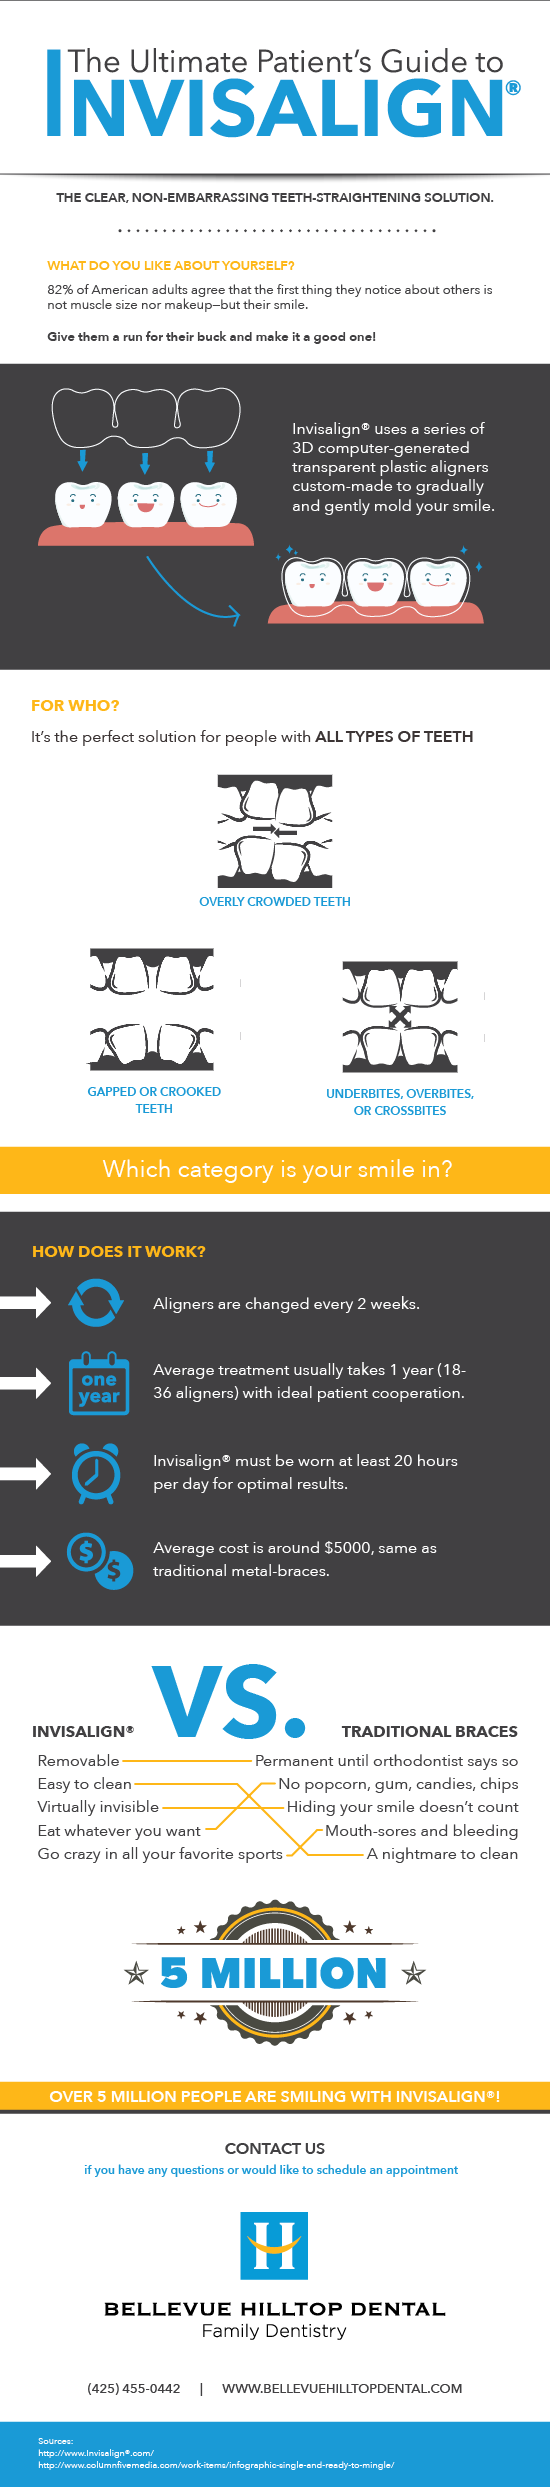 Invisalign infographic outlining how it works, issues it fixes and cost.